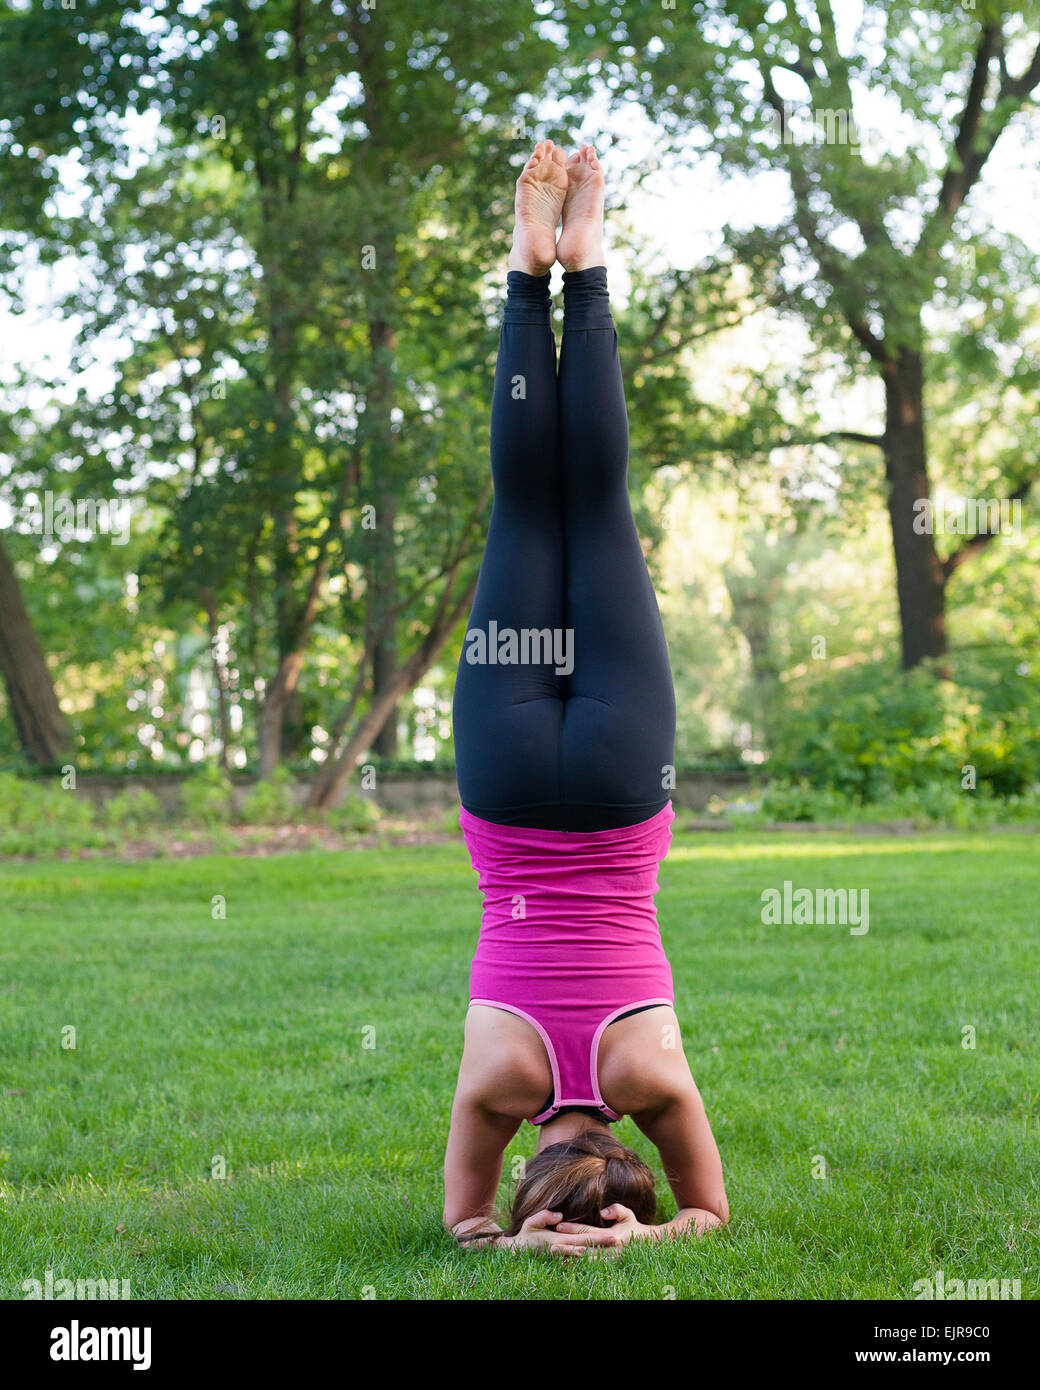 Caucasian woman practicing yoga in park Photo Stock